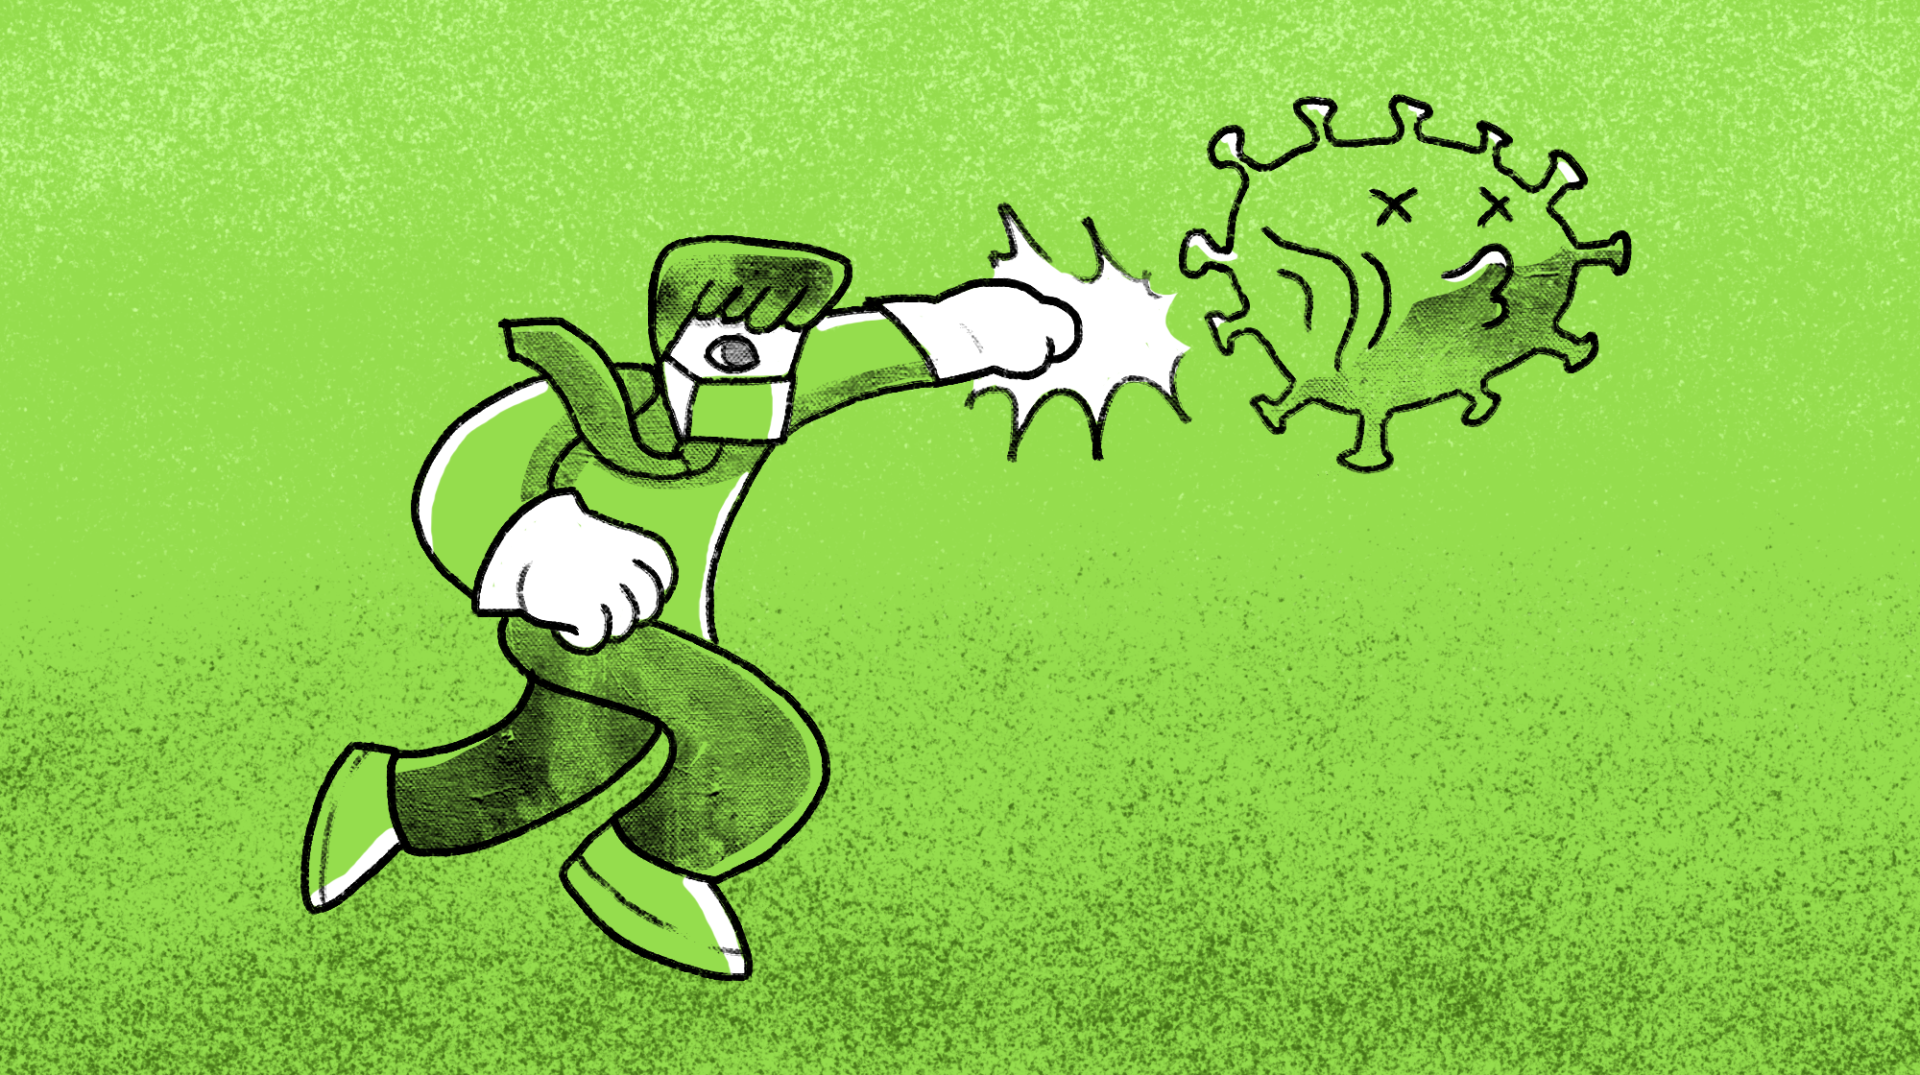 Pen and ink man on green background punching a virus